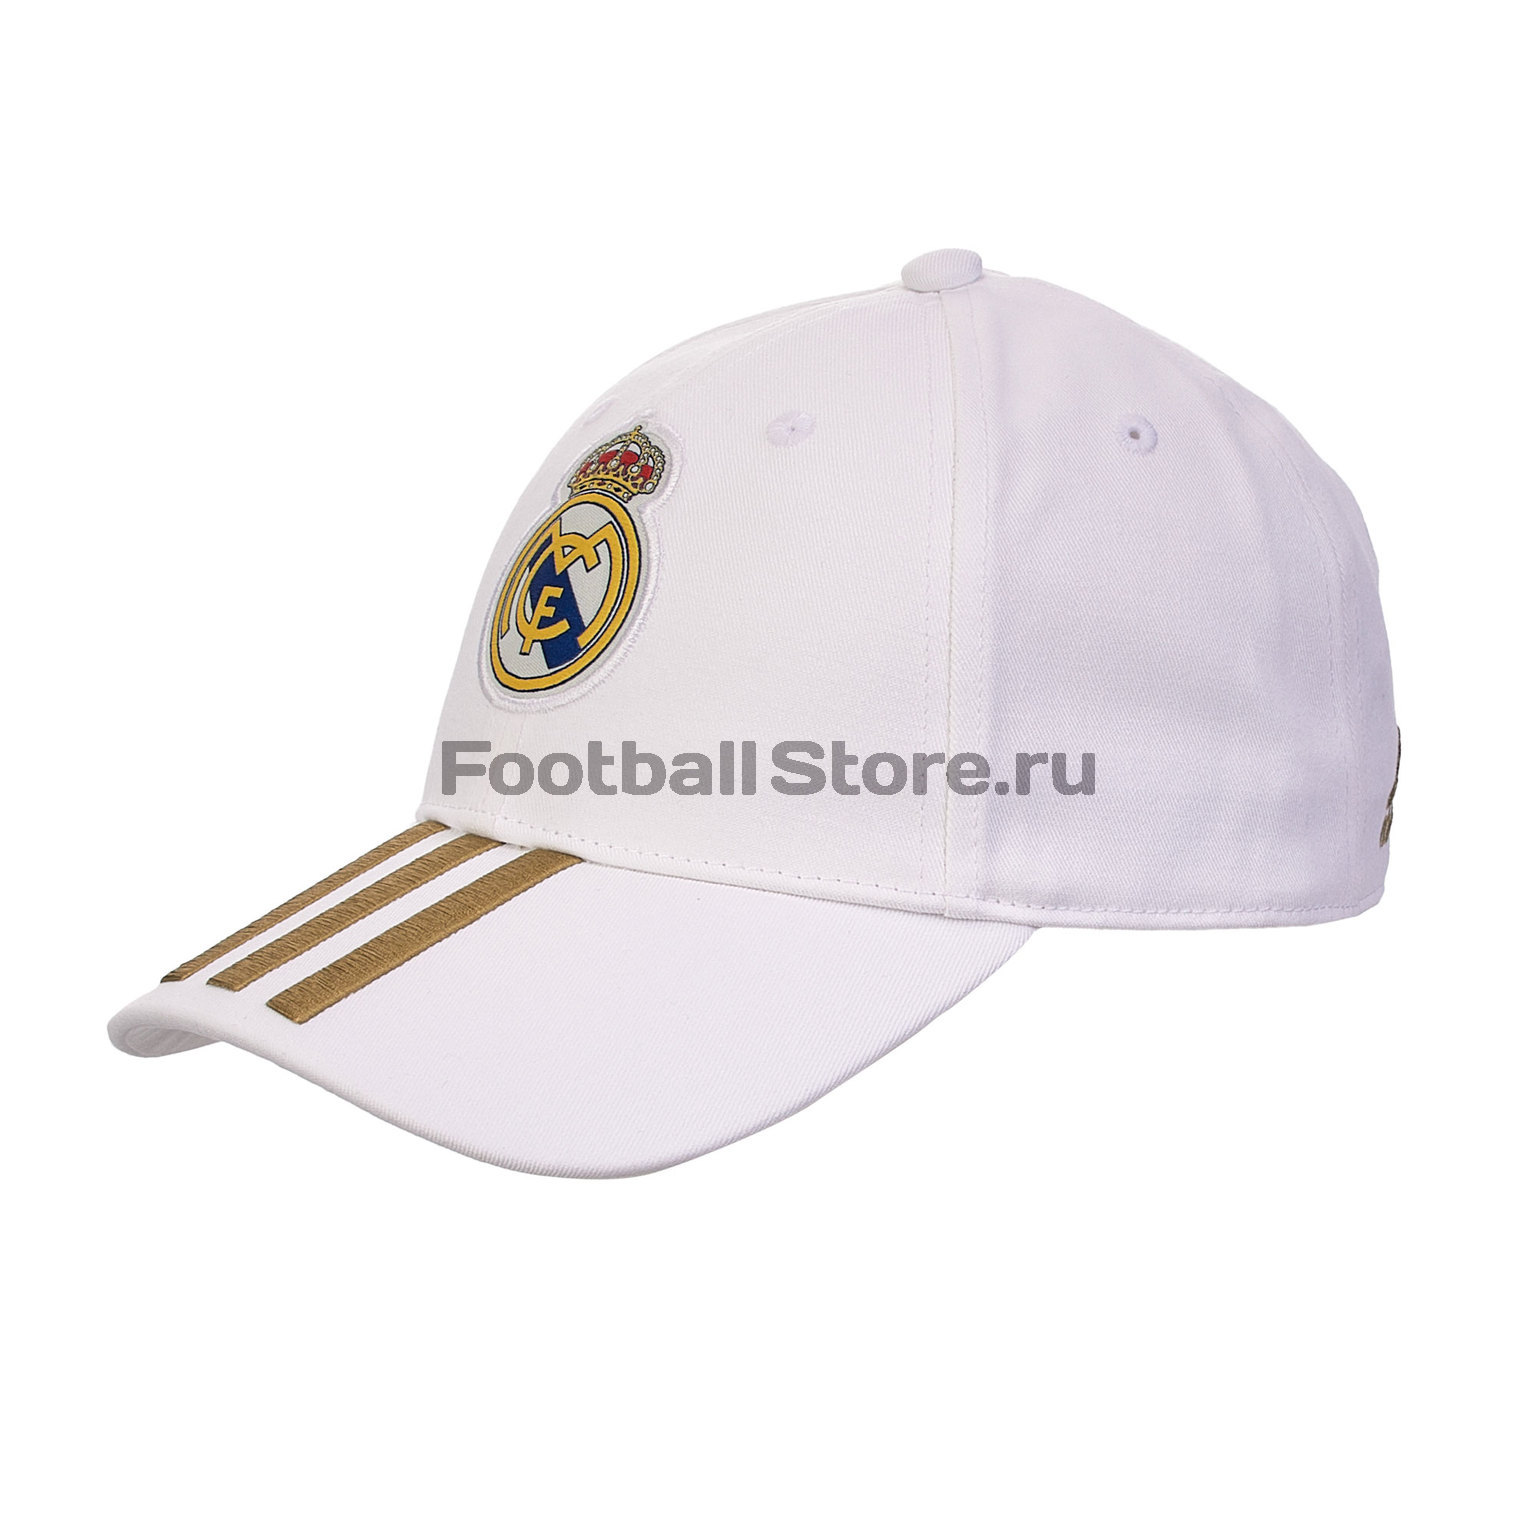 Бейсболка Adidas Real Madrid C40 Cap DY7720 елена кузнецова игорь петров геннадий васильев ольга сараджева в мамишев евгений жуков нодари эриашвили банковский менеджмент учебник